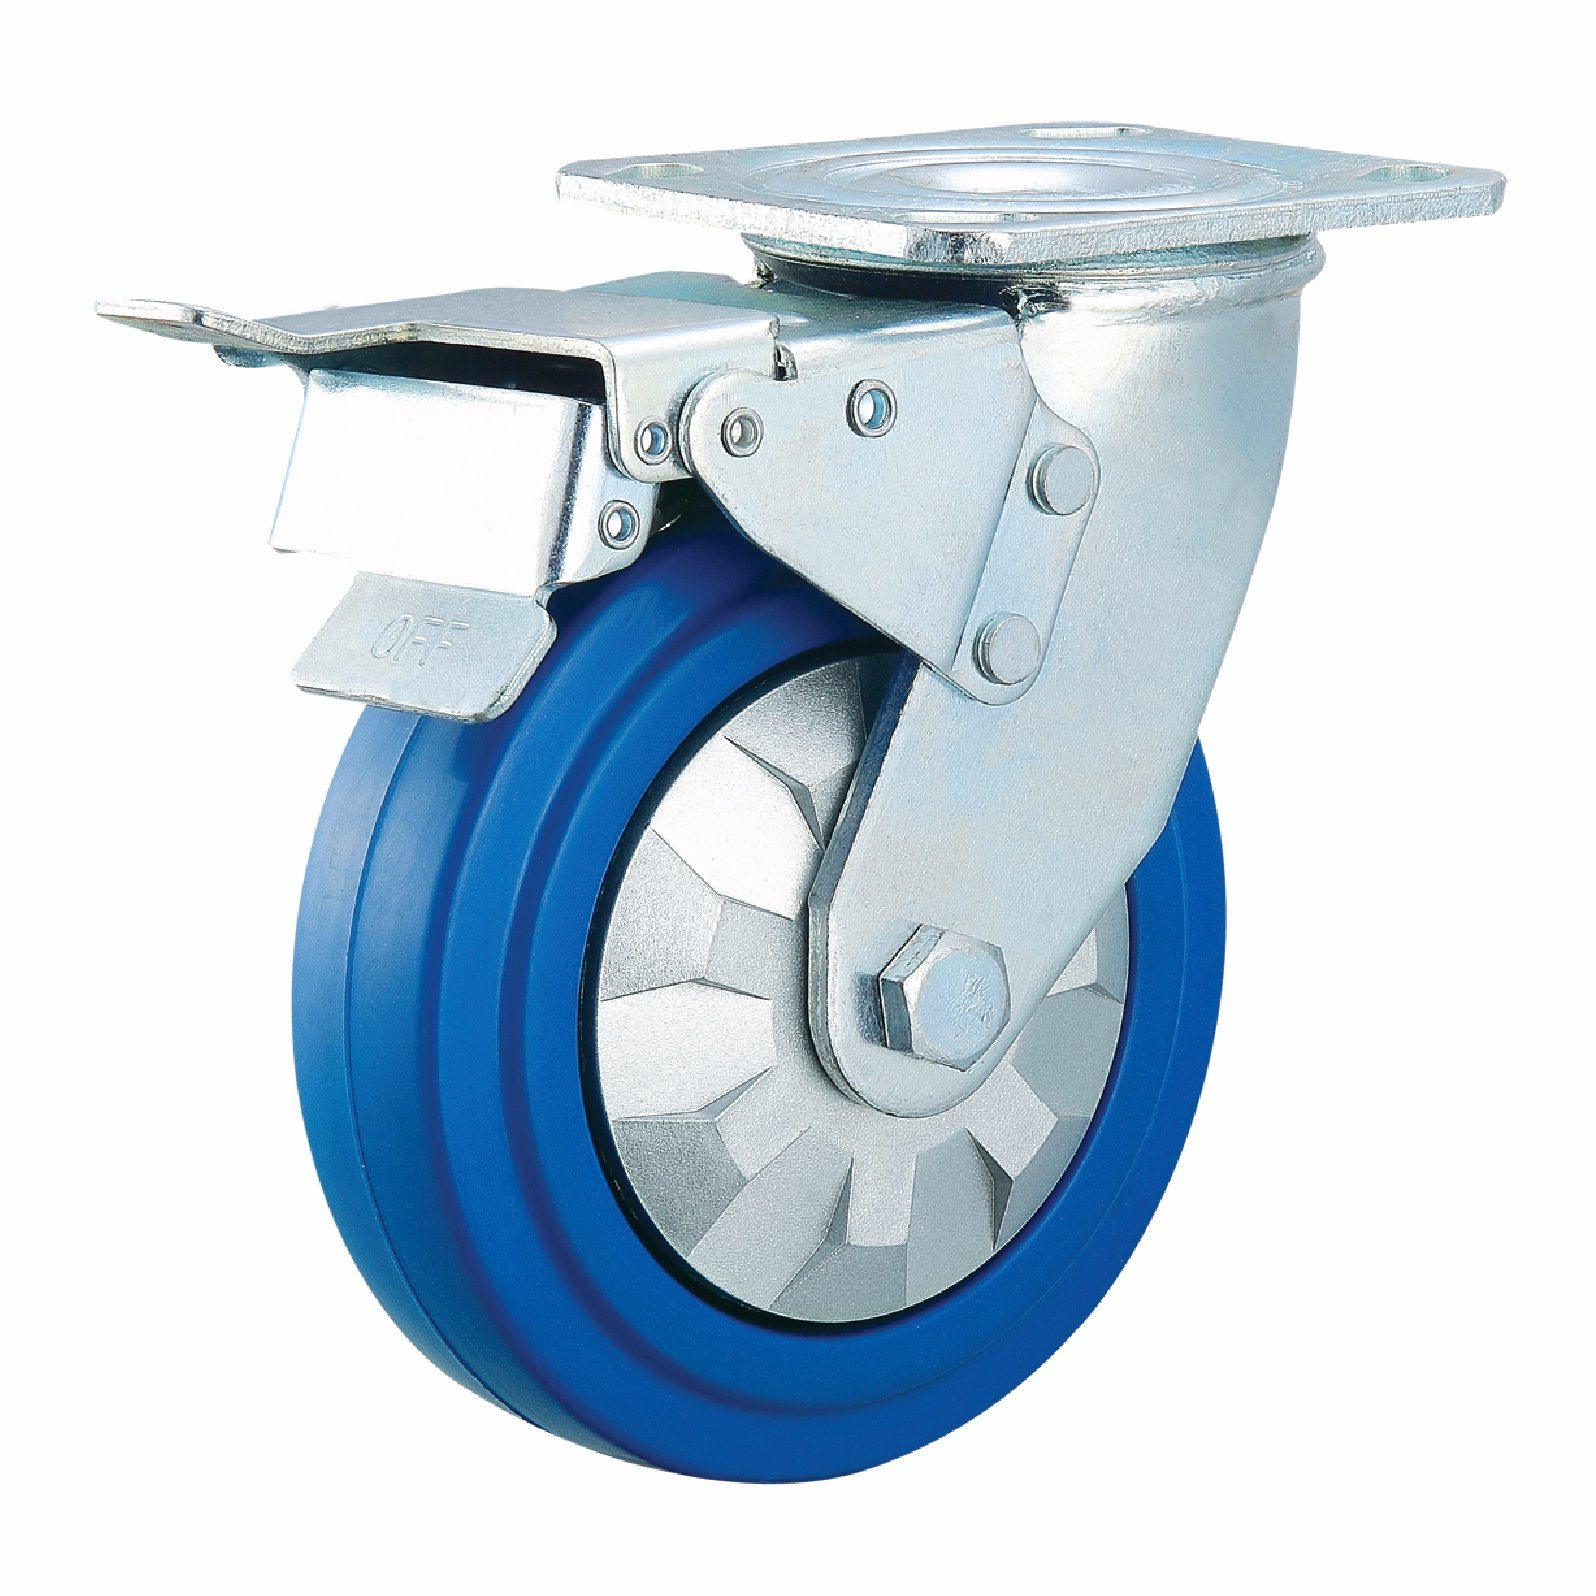 4 Inch-8 Inch Heavy Duty Elastic Rubber Castor Wheel Industrial Caster with Brake